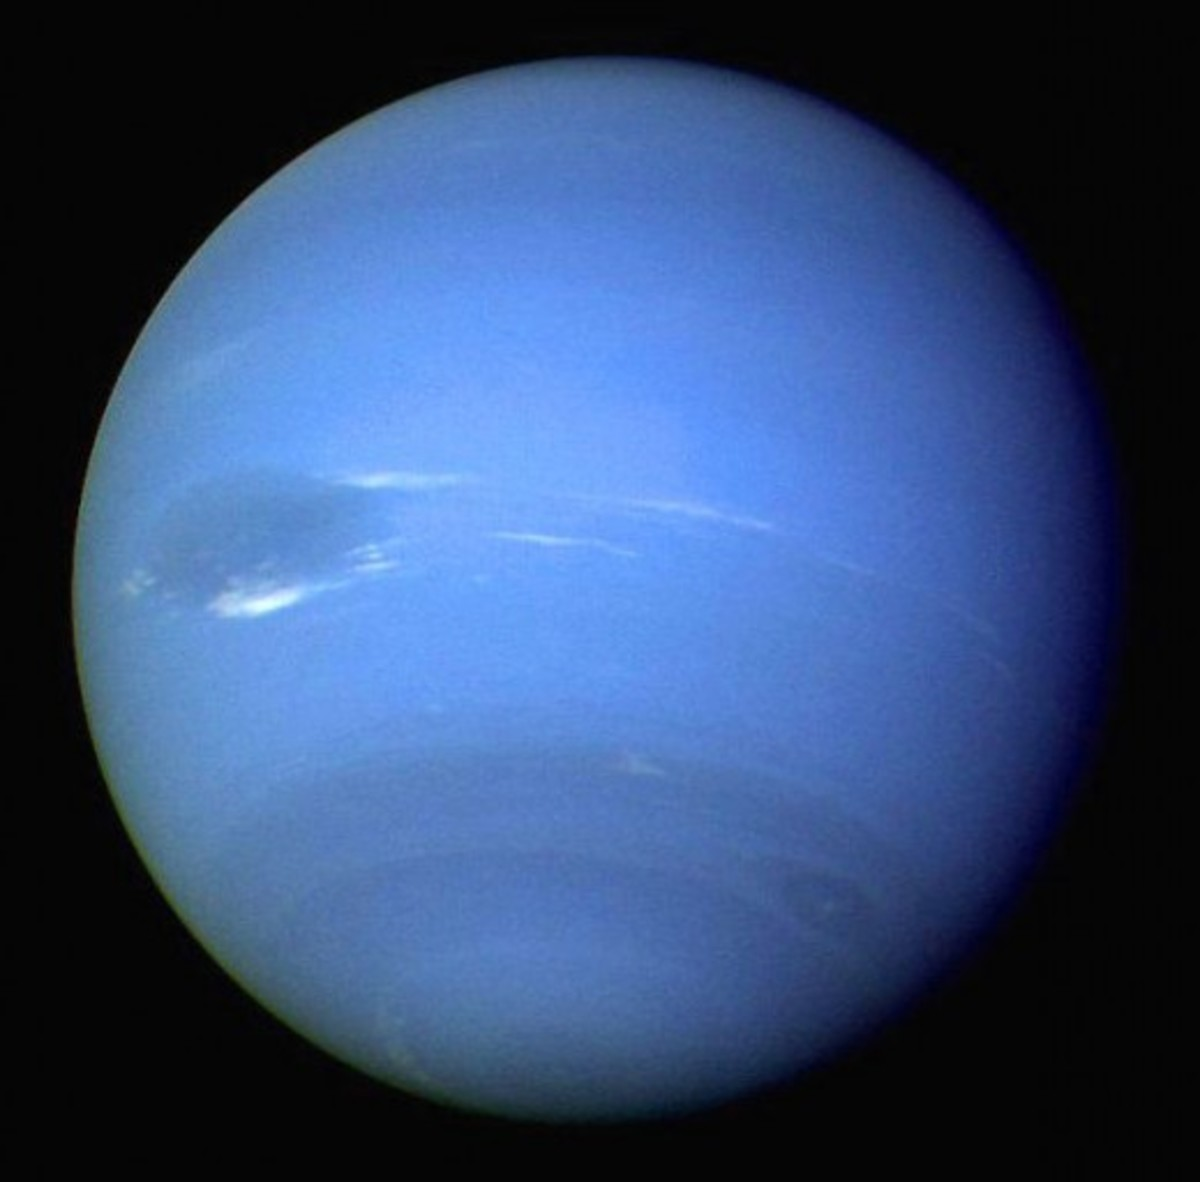 The planet Neptune, named after the god of the seas due to its blue color.